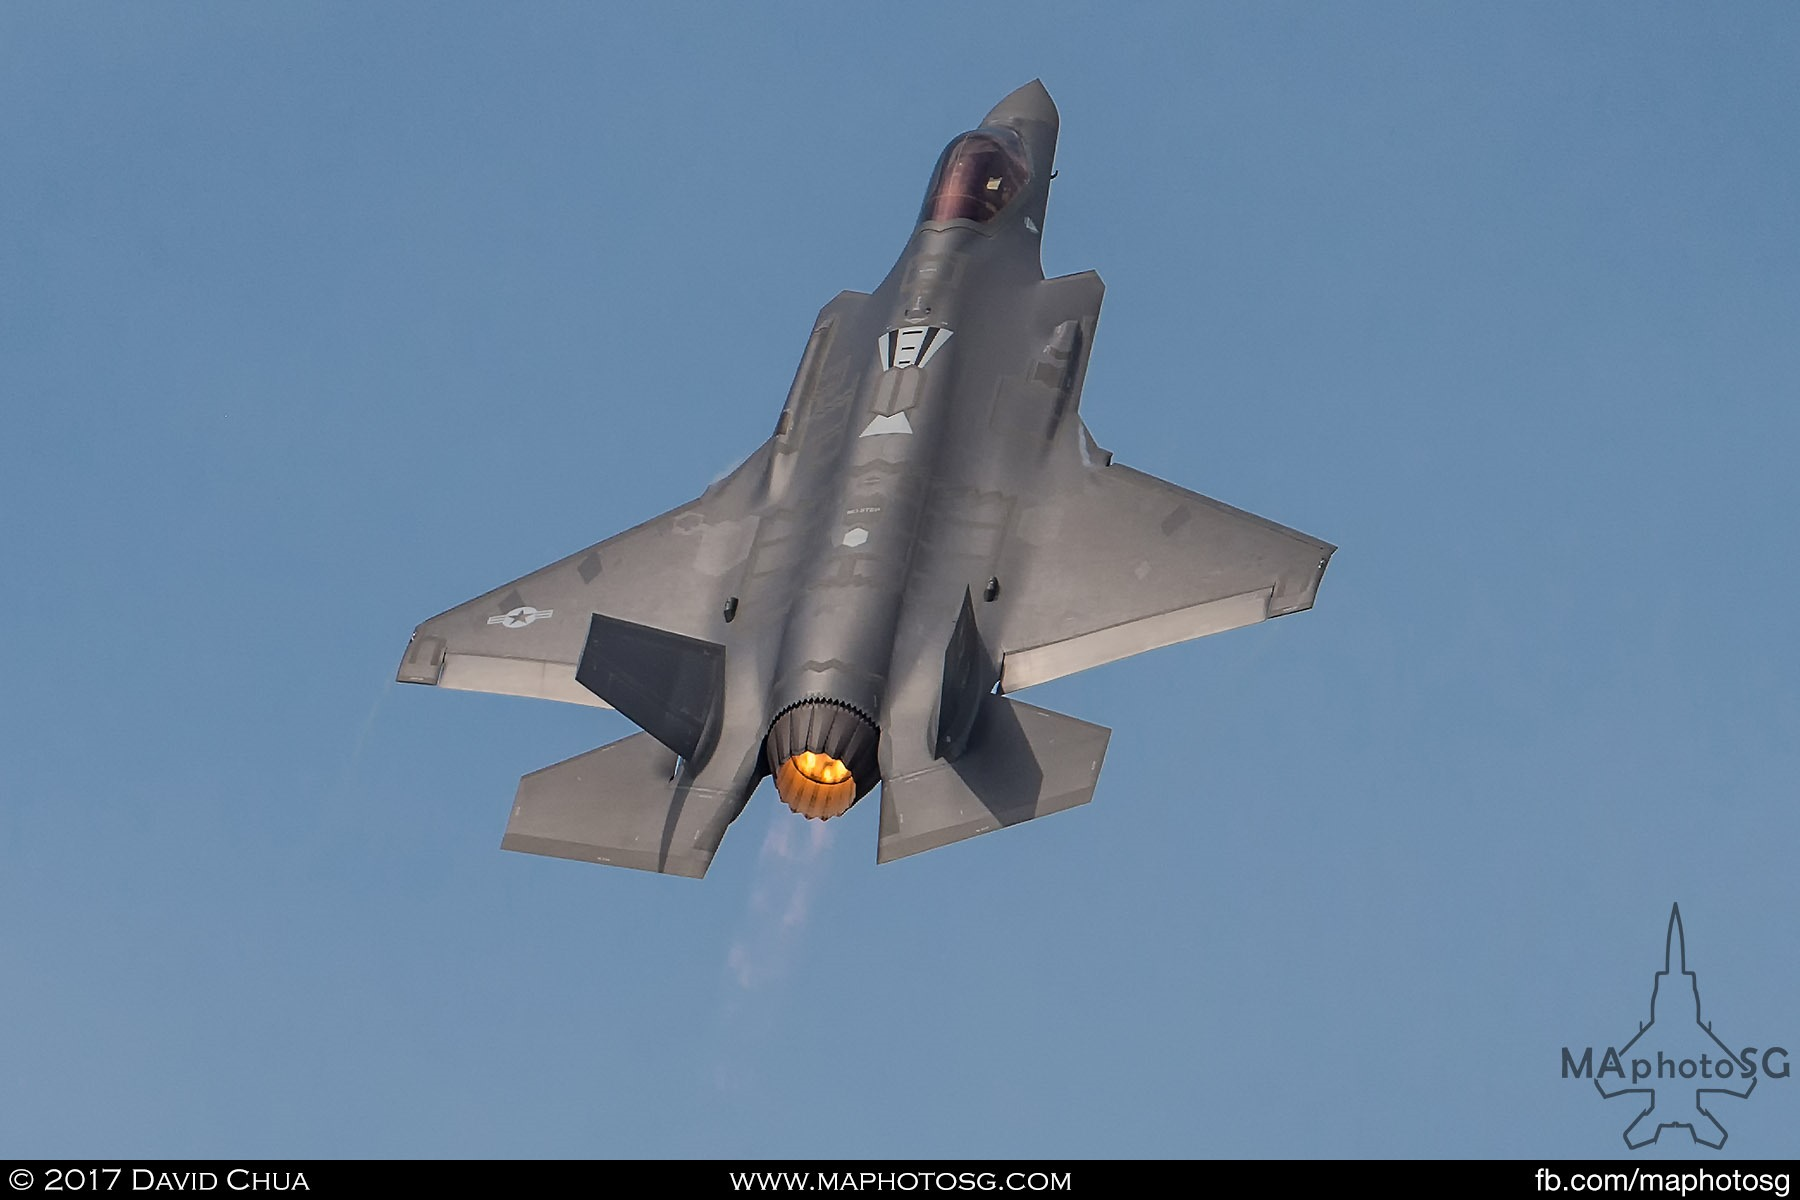 4. This is the first time that the Lockheed Martin F-35A performed an aerial demonstration display at any airshow. The demo was designed by Lockheed Martin and USAF to show off the capabilities of this 5th Generation Aircraft.